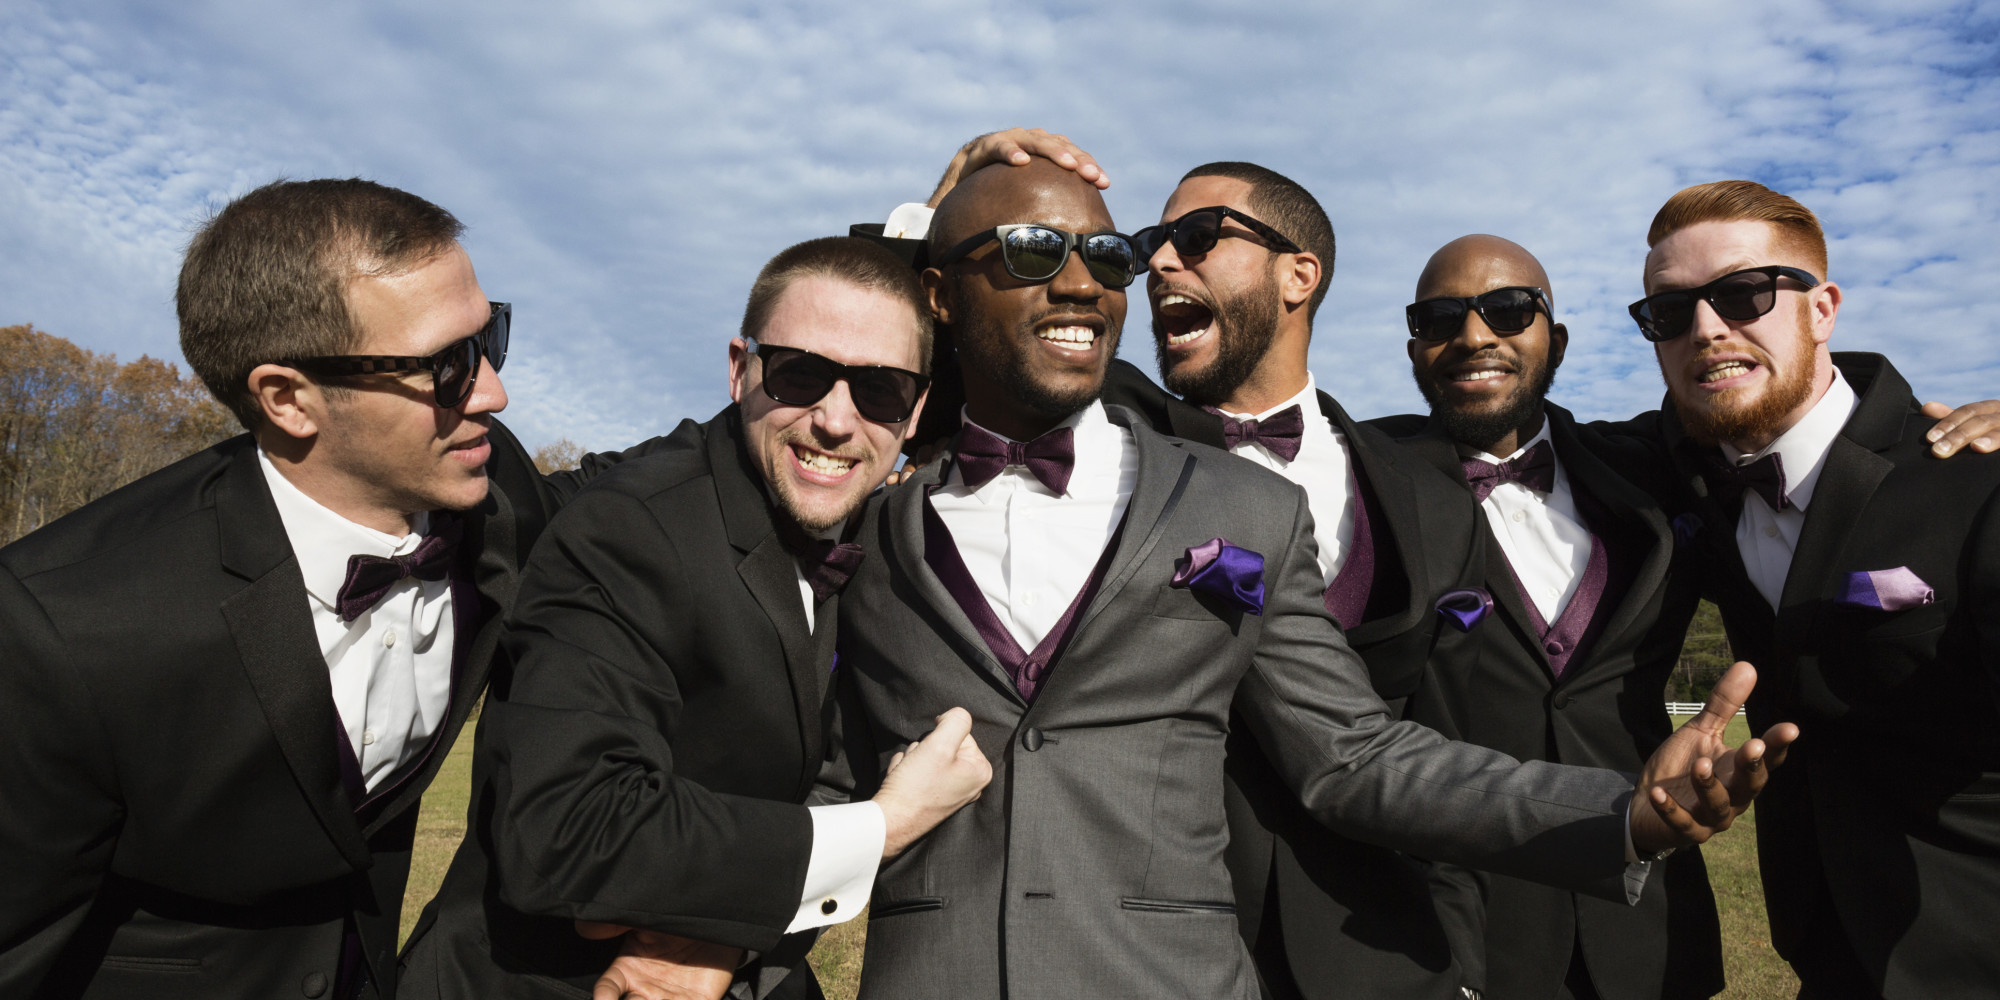 Wedding Gifts Best Man: 5 Fun And Easy Groomsmen Gifts For Your Big Day